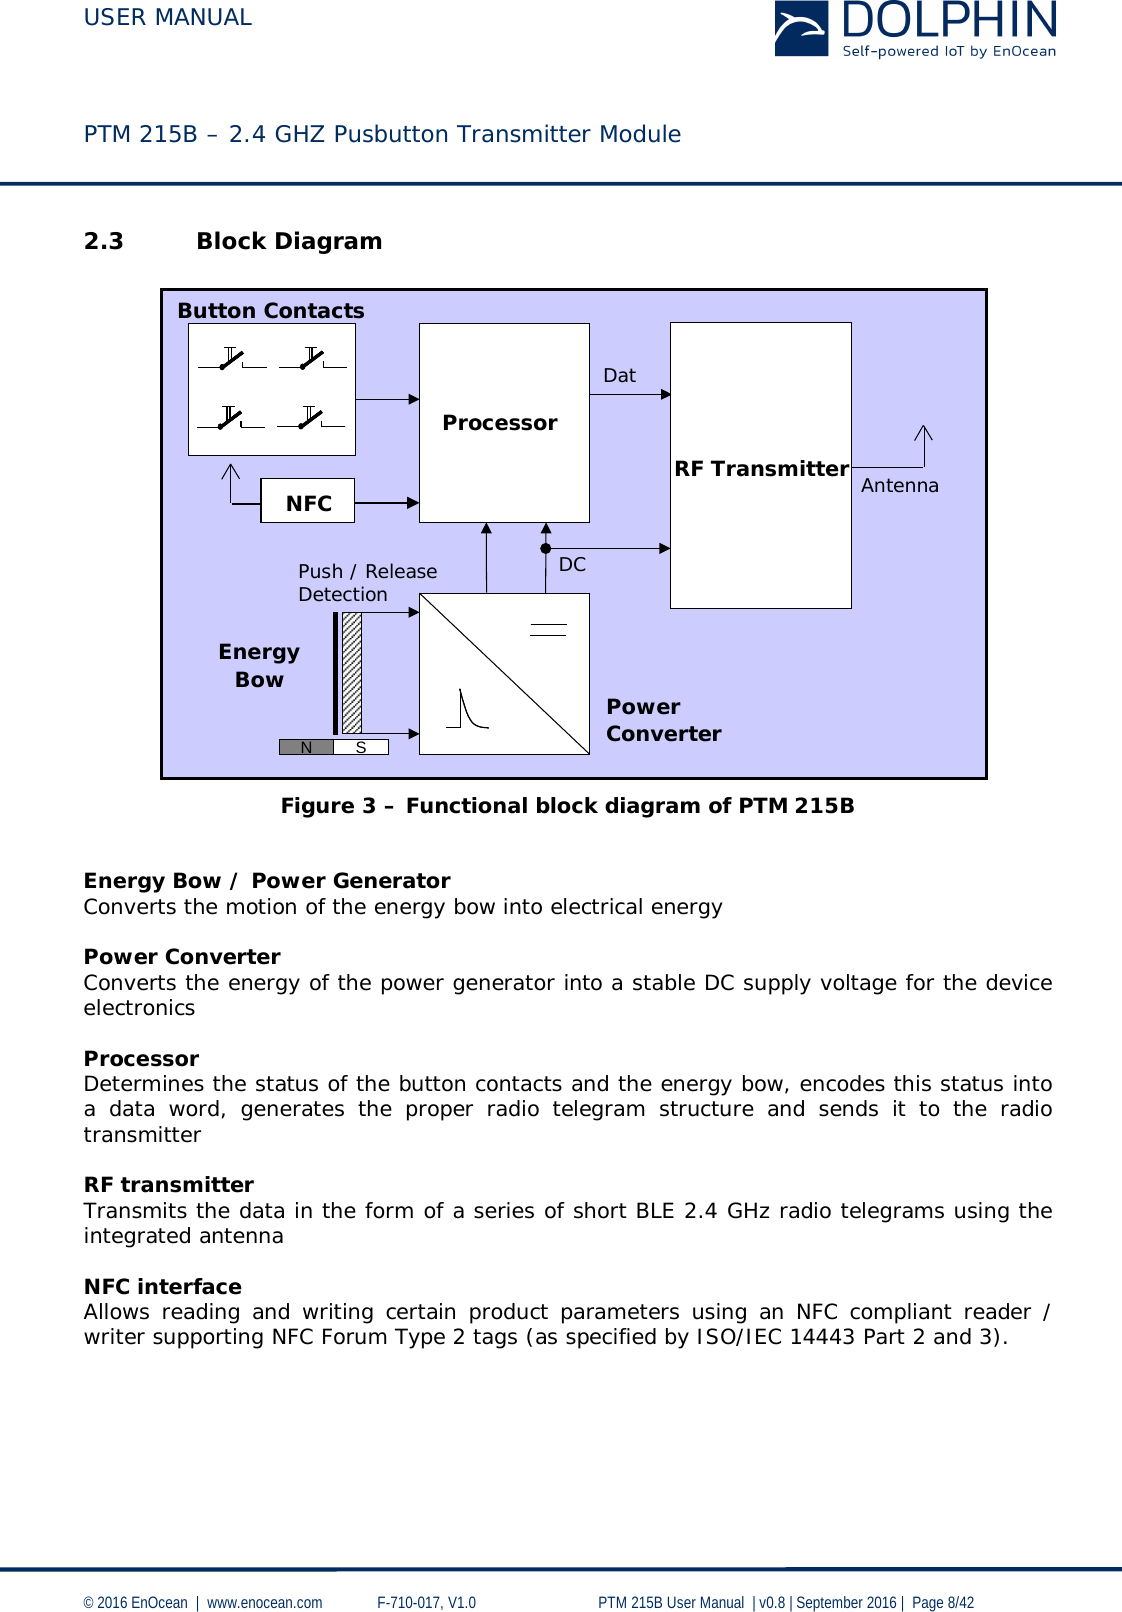 USER MANUAL    PTM 215B – 2.4 GHZ Pusbutton Transmitter Module  © 2016 EnOcean     www.enocean.com   F-710-017, V1.0        PTM 215B User Manual    v0.8   September 2016    Page 8/42  2.3 Block Diagram                      Figure 3 – Functional block diagram of PTM 215B   Energy Bow / Power Generator Converts the motion of the energy bow into electrical energy  Power Converter Converts the energy of the power generator into a stable DC supply voltage for the device electronics  Processor Determines the status of the button contacts and the energy bow, encodes this status into a data word, generates the proper radio telegram structure and sends it to the radio transmitter  RF transmitter Transmits the data in the form of a series of short BLE 2.4 GHz radio telegrams using the integrated antenna  NFC interface Allows reading and writing certain product parameters using an NFC compliant reader / writer supporting NFC Forum Type 2 tags (as specified by ISO/IEC 14443 Part 2 and 3).        Processor Energy Bow Powe Converte Dat DC   Pushed / Released Ant N S Processor Button Contacts Energy Bow Power Converter Dat DC   Push / Release Detection Antenna N S N S NFC RF Transmitter